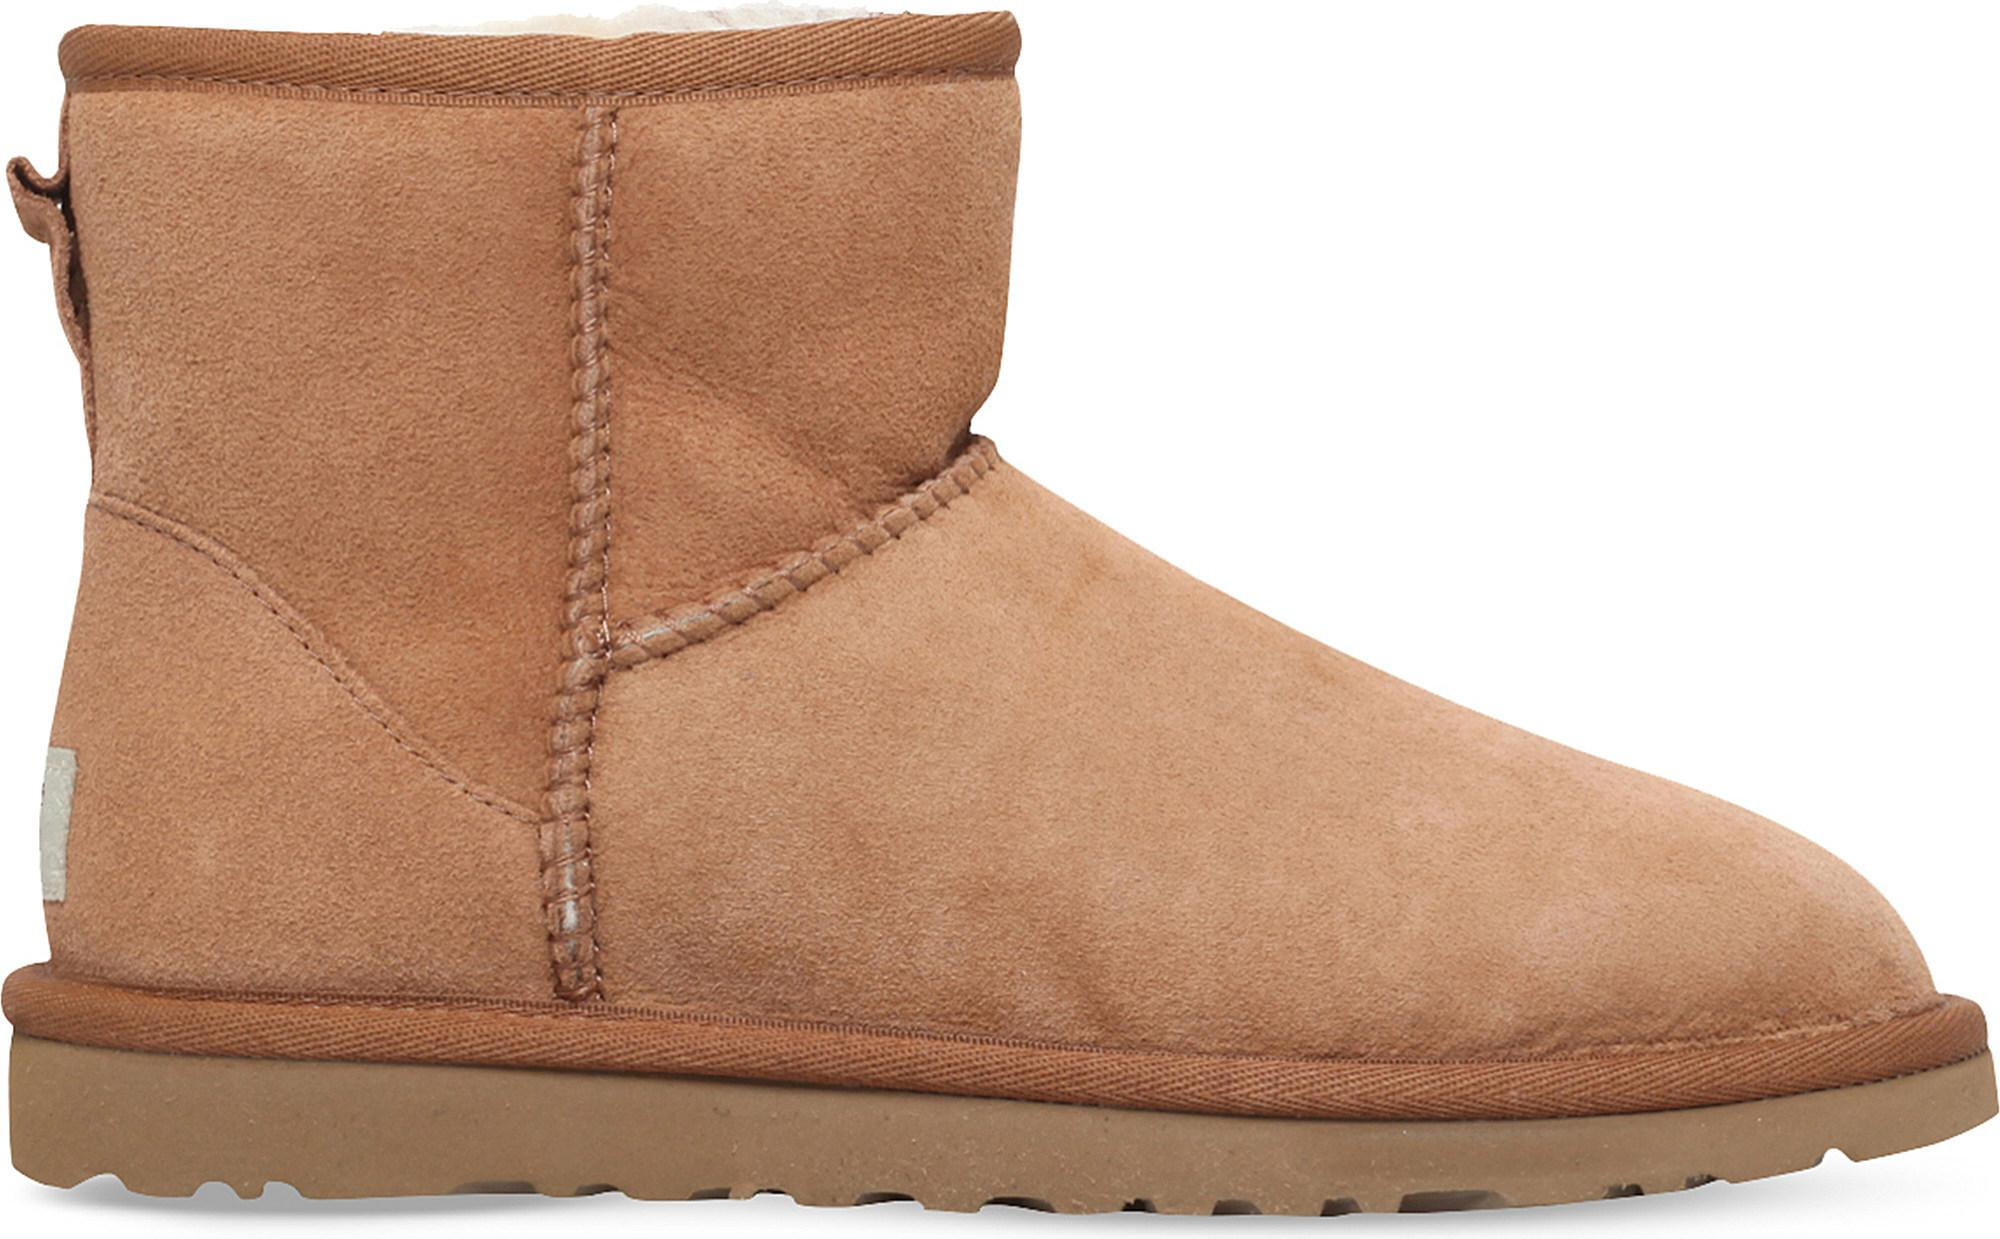 selfridges ugg sale